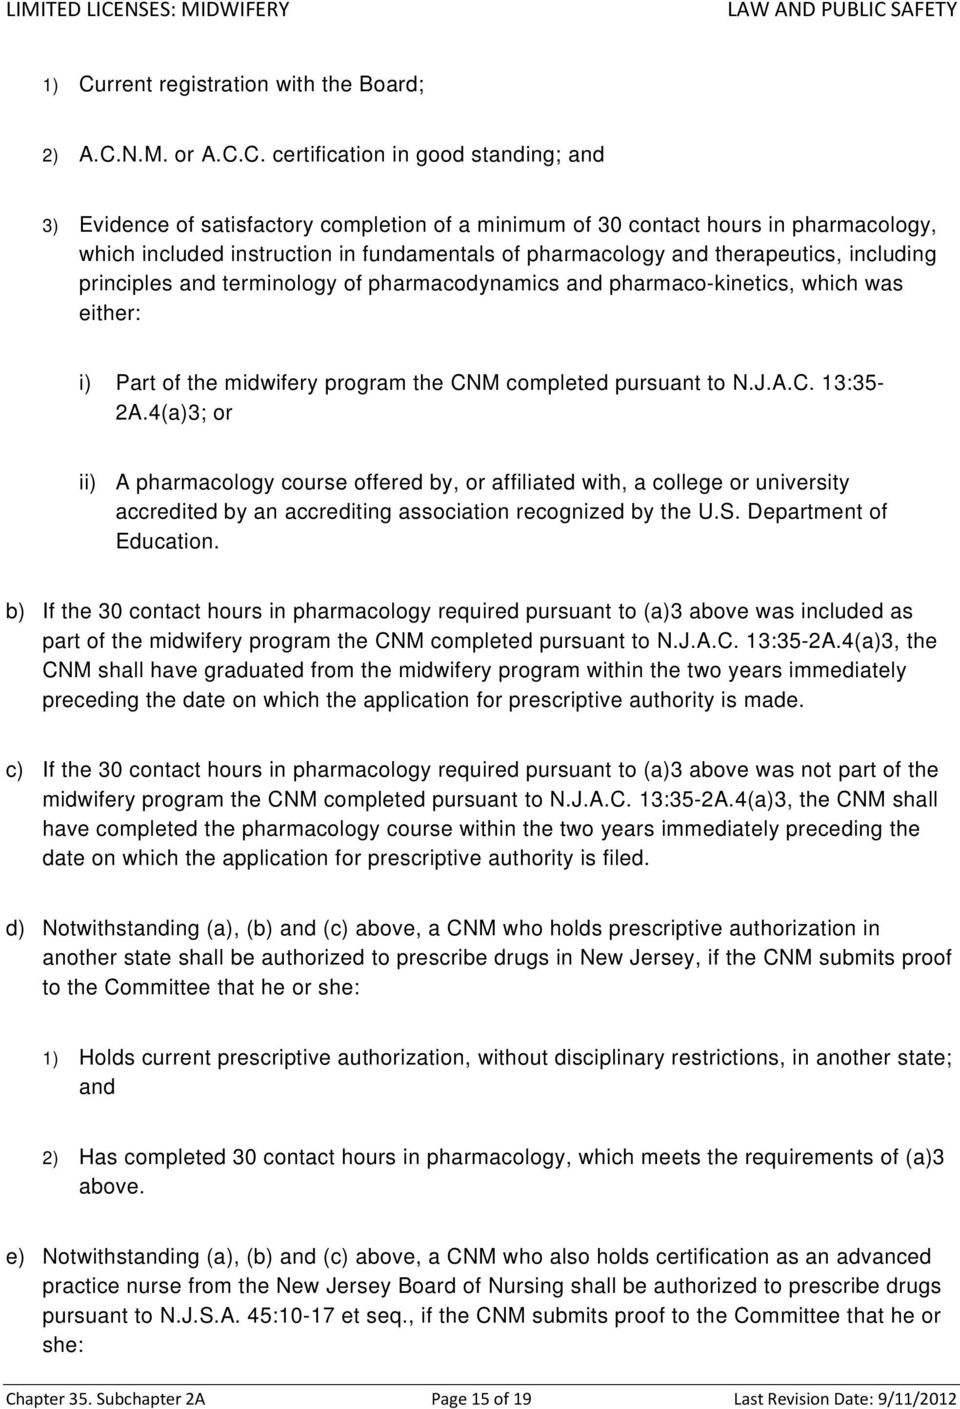 program the CNM completed pursuant to N.J.A.C. 13:35-2A.